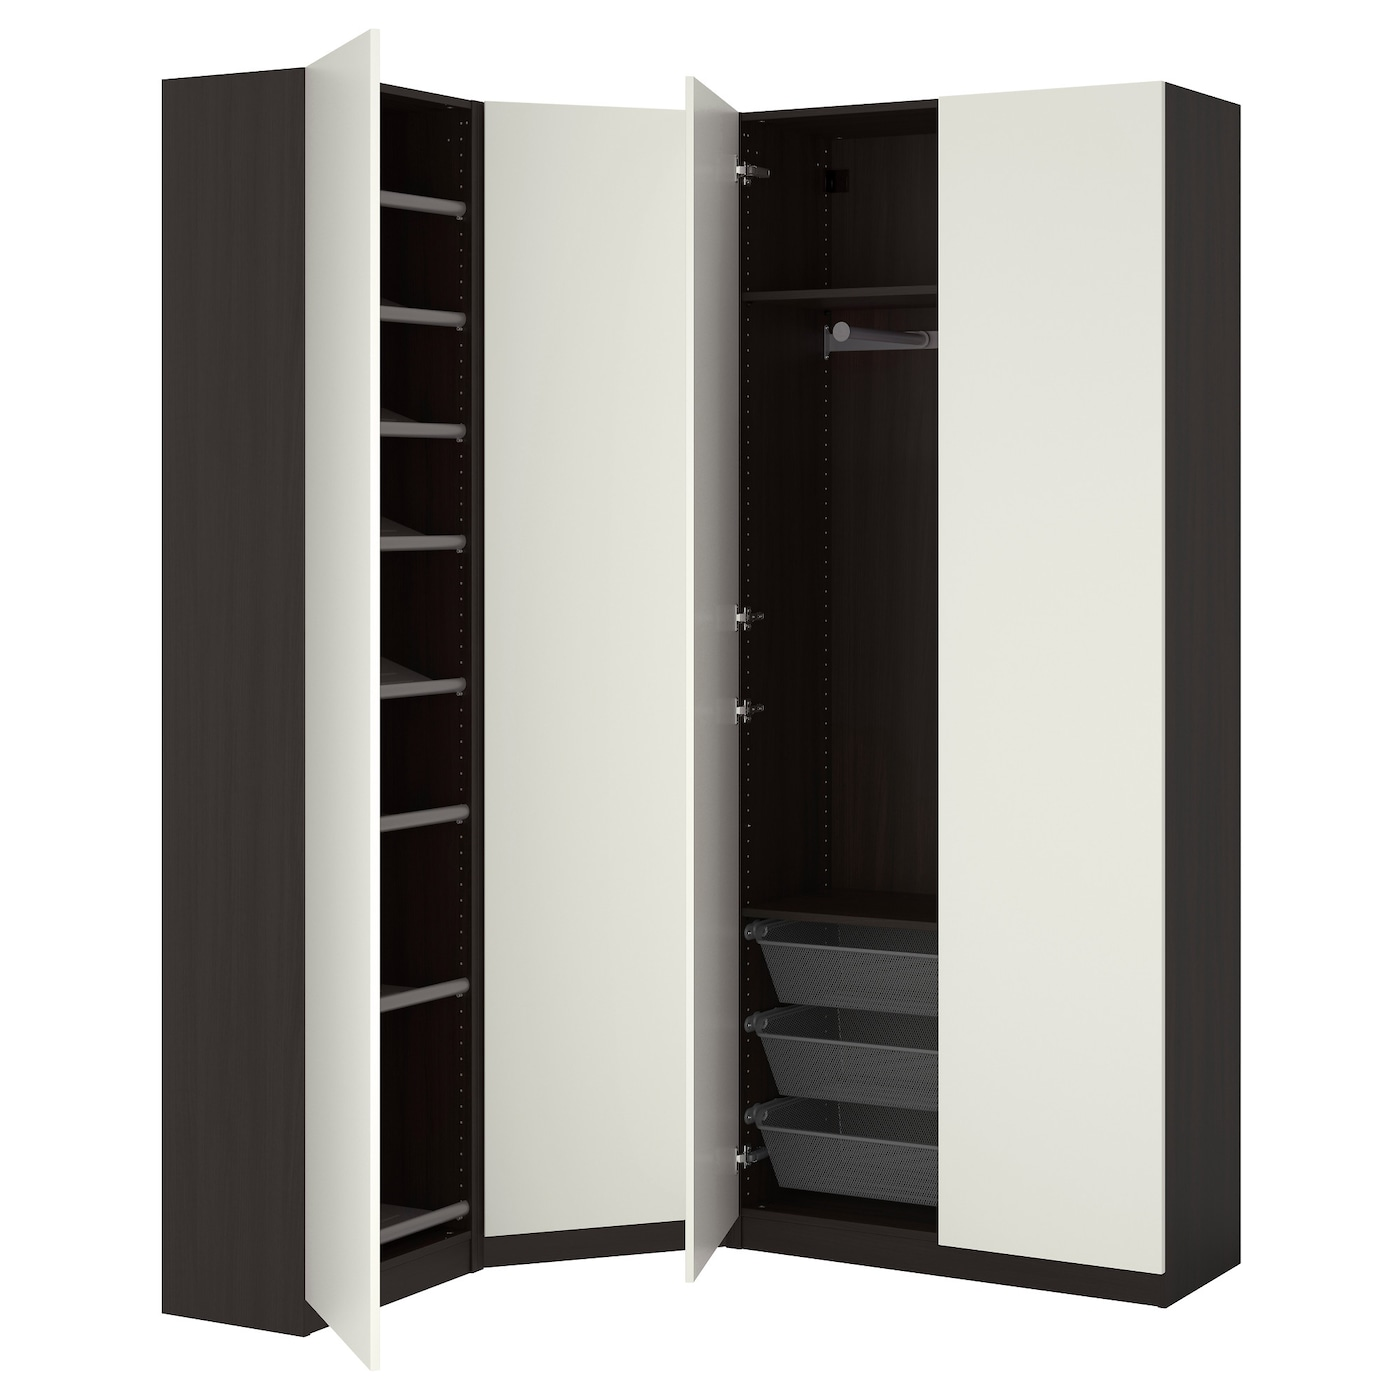 pax wardrobe black brown ballstad white 123 173x38x236 cm. Black Bedroom Furniture Sets. Home Design Ideas